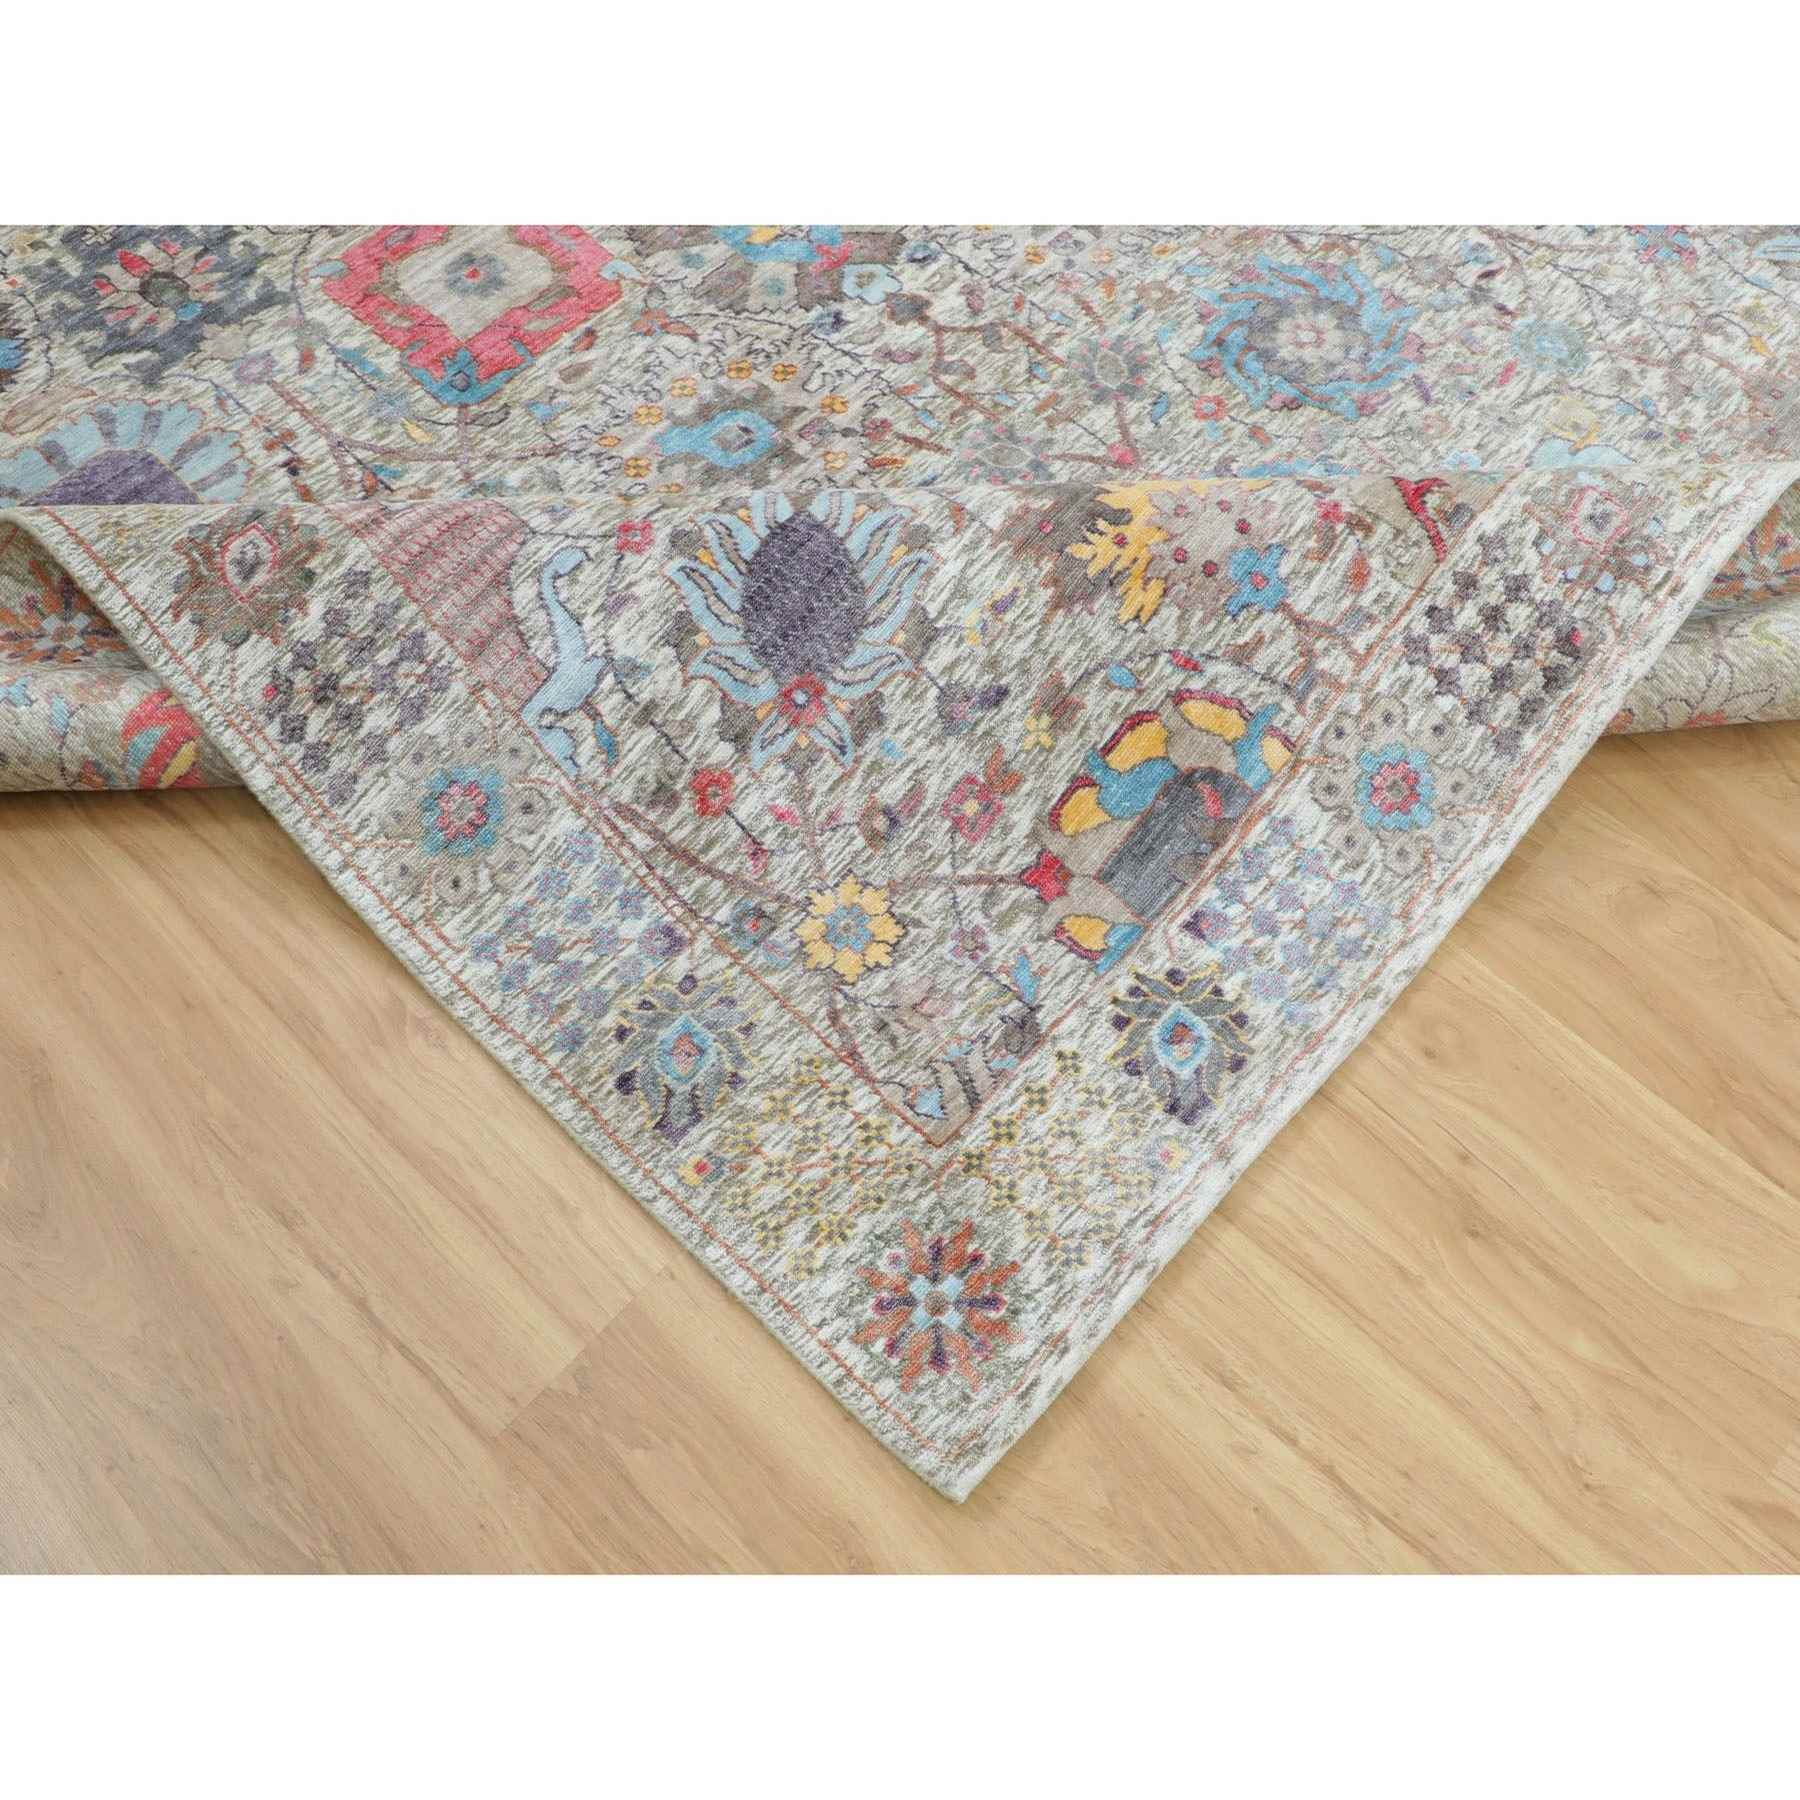 Transitional-Hand-Knotted-Rug-290775